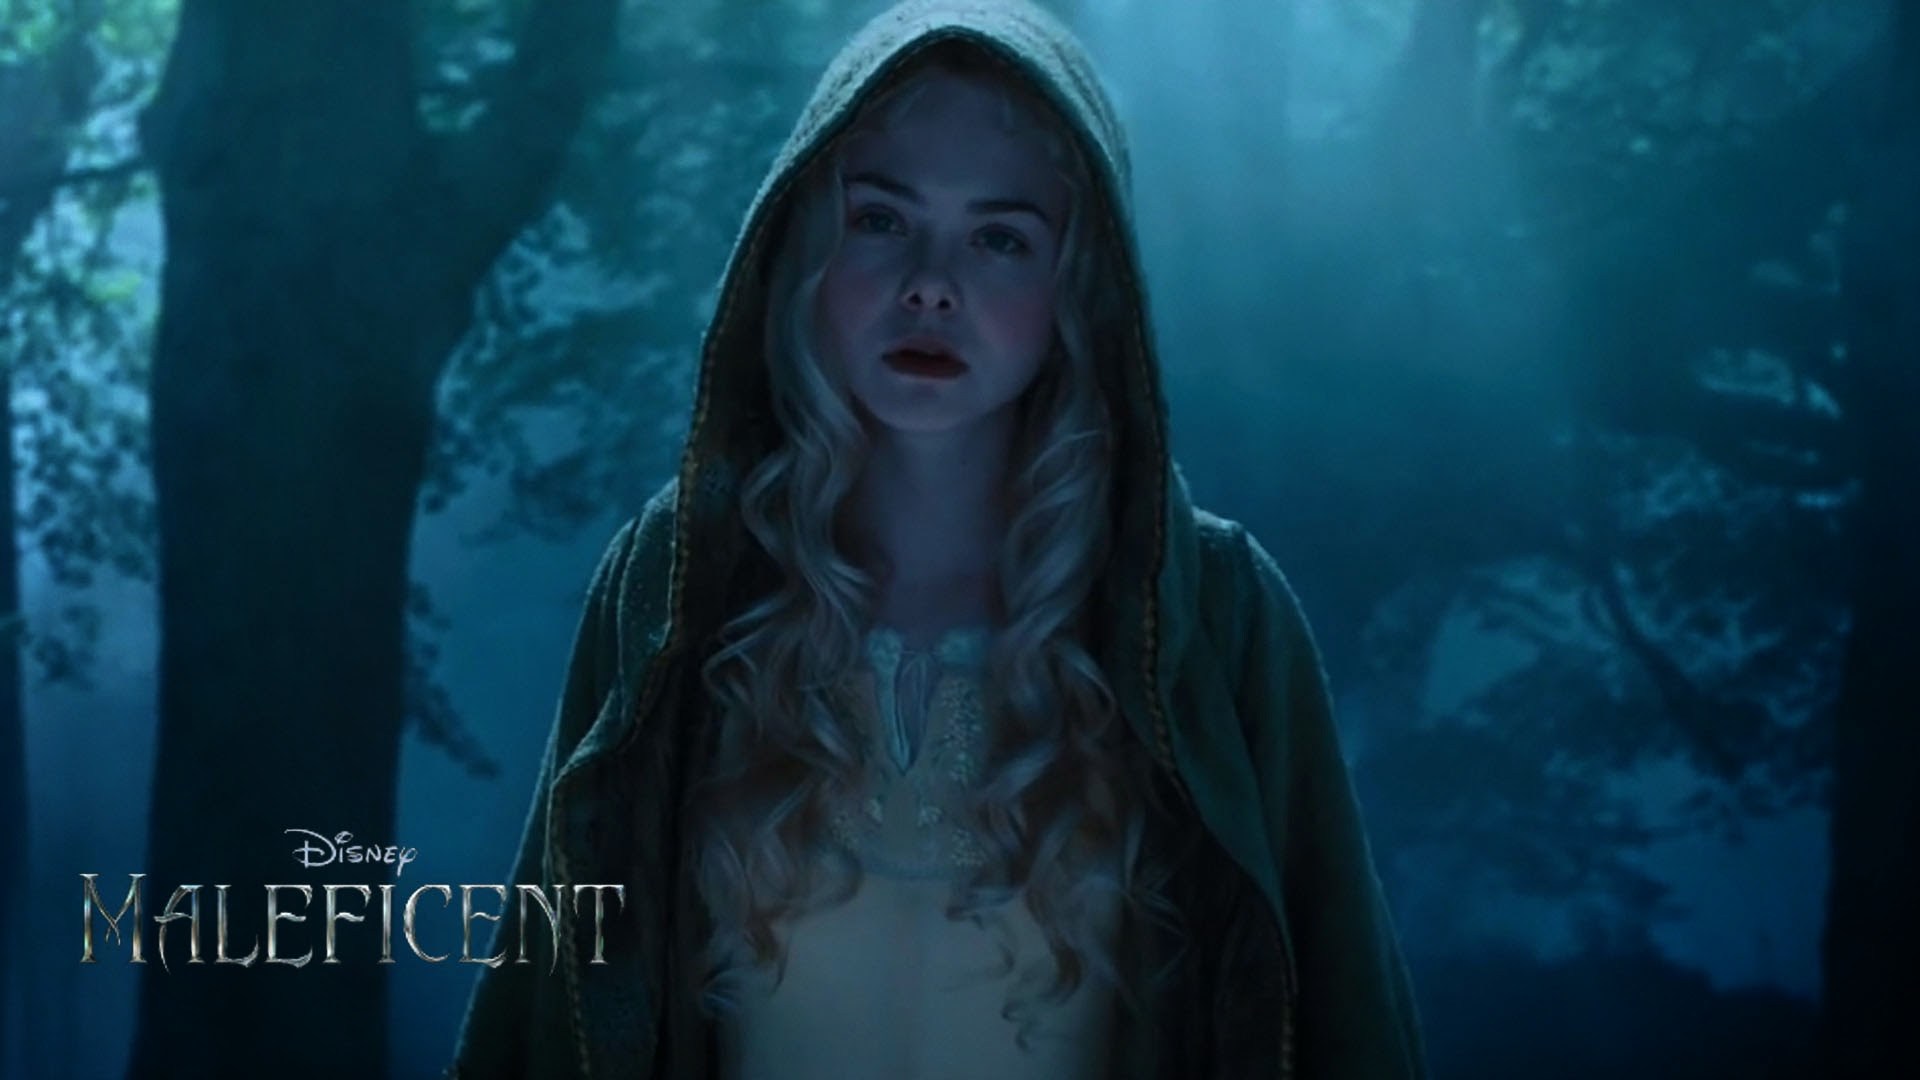 Elle Fanning Maleficent Interview: Elle Fanning Talks Maleficent and Her Relationship With Sister Dakota